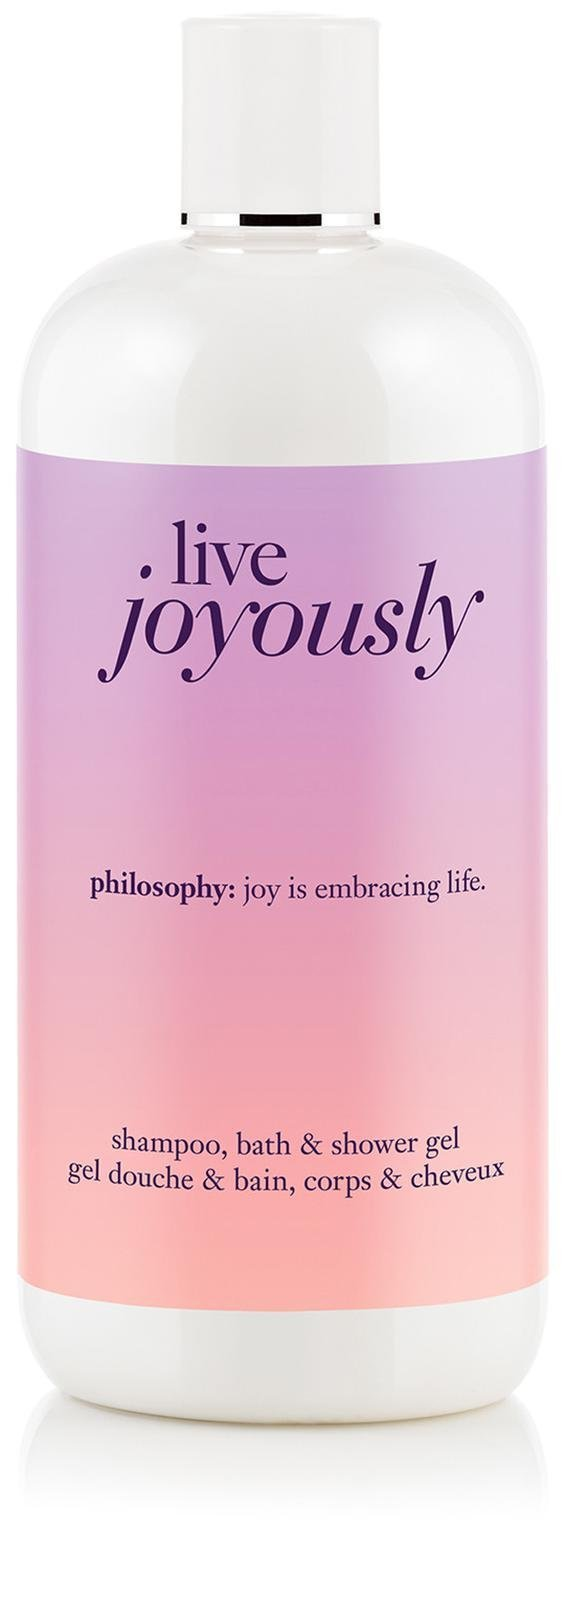 Philosophy shower gel - live joyously - 16 oz